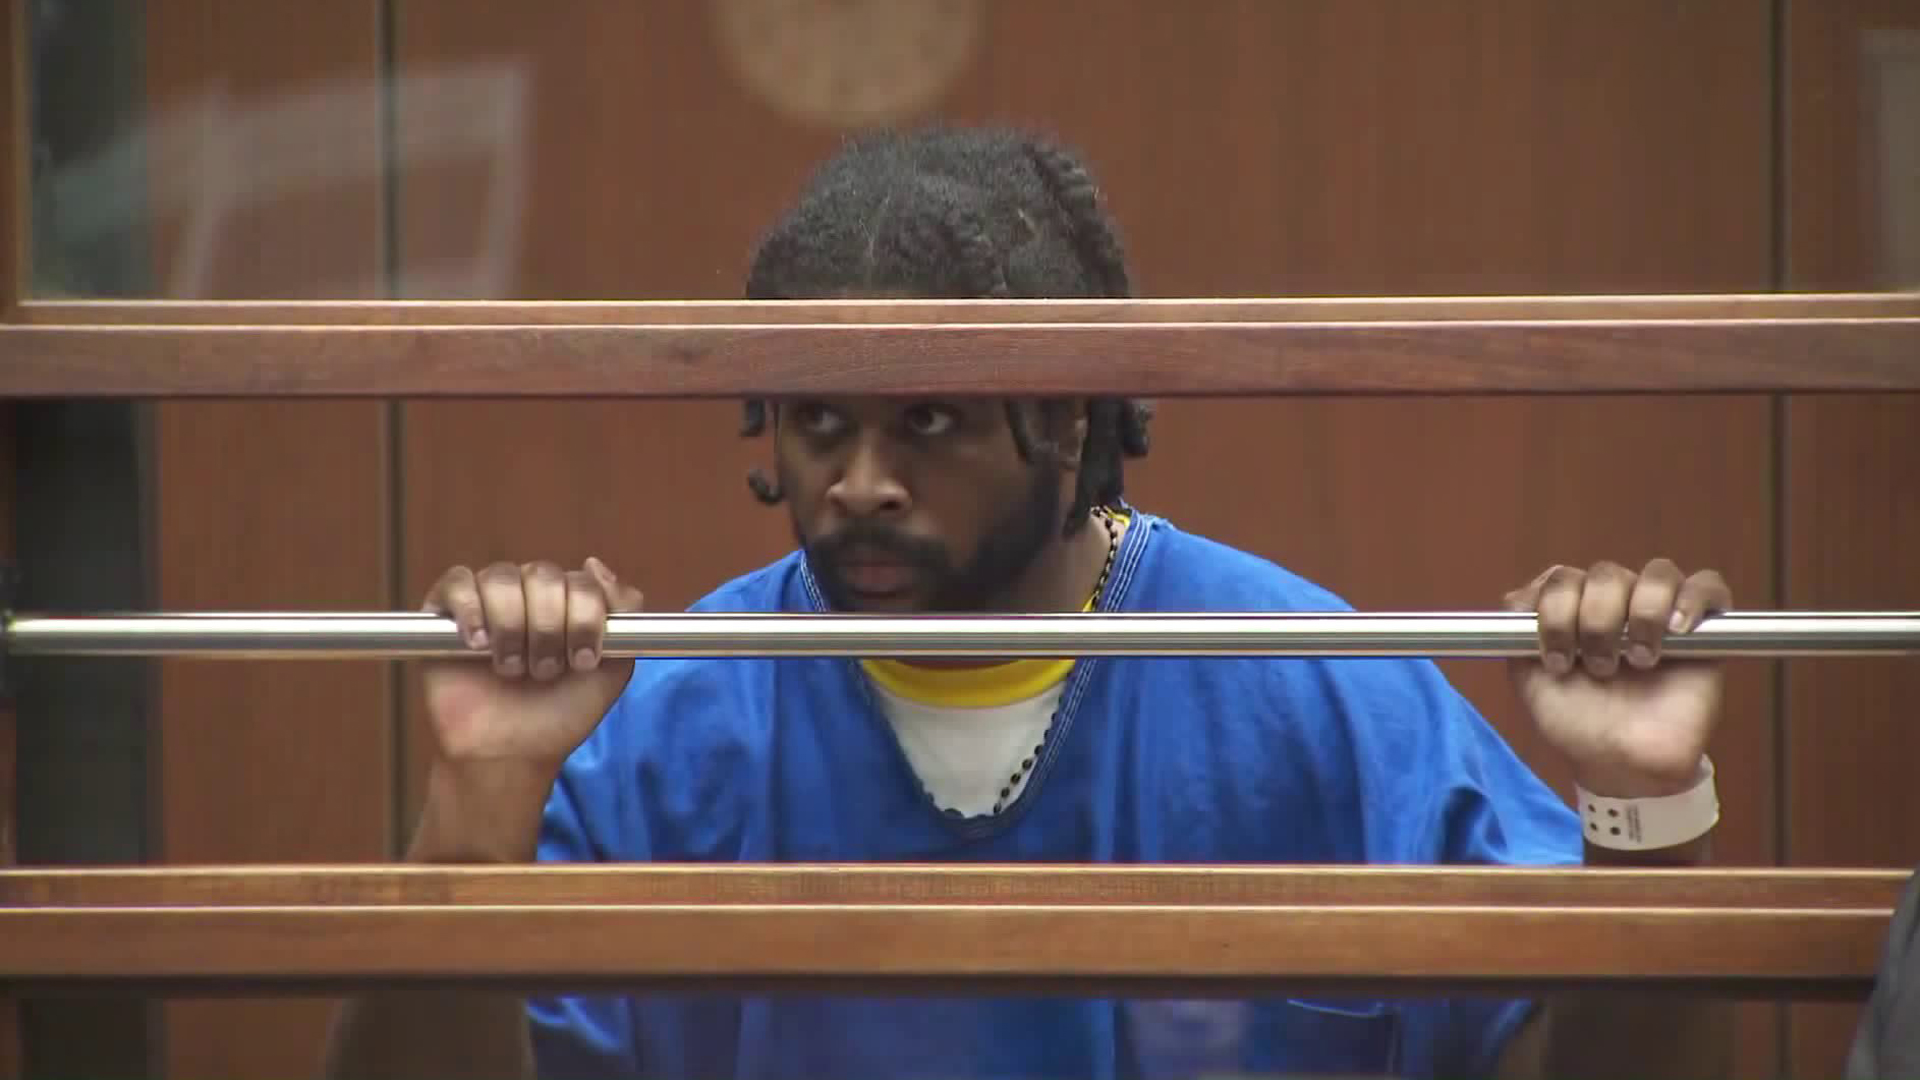 Gene Atkins appears during a hearing at the Foltz Criminal Justice Center in downtown Los Angeles on Nov. 7, 2018. (KTLA)